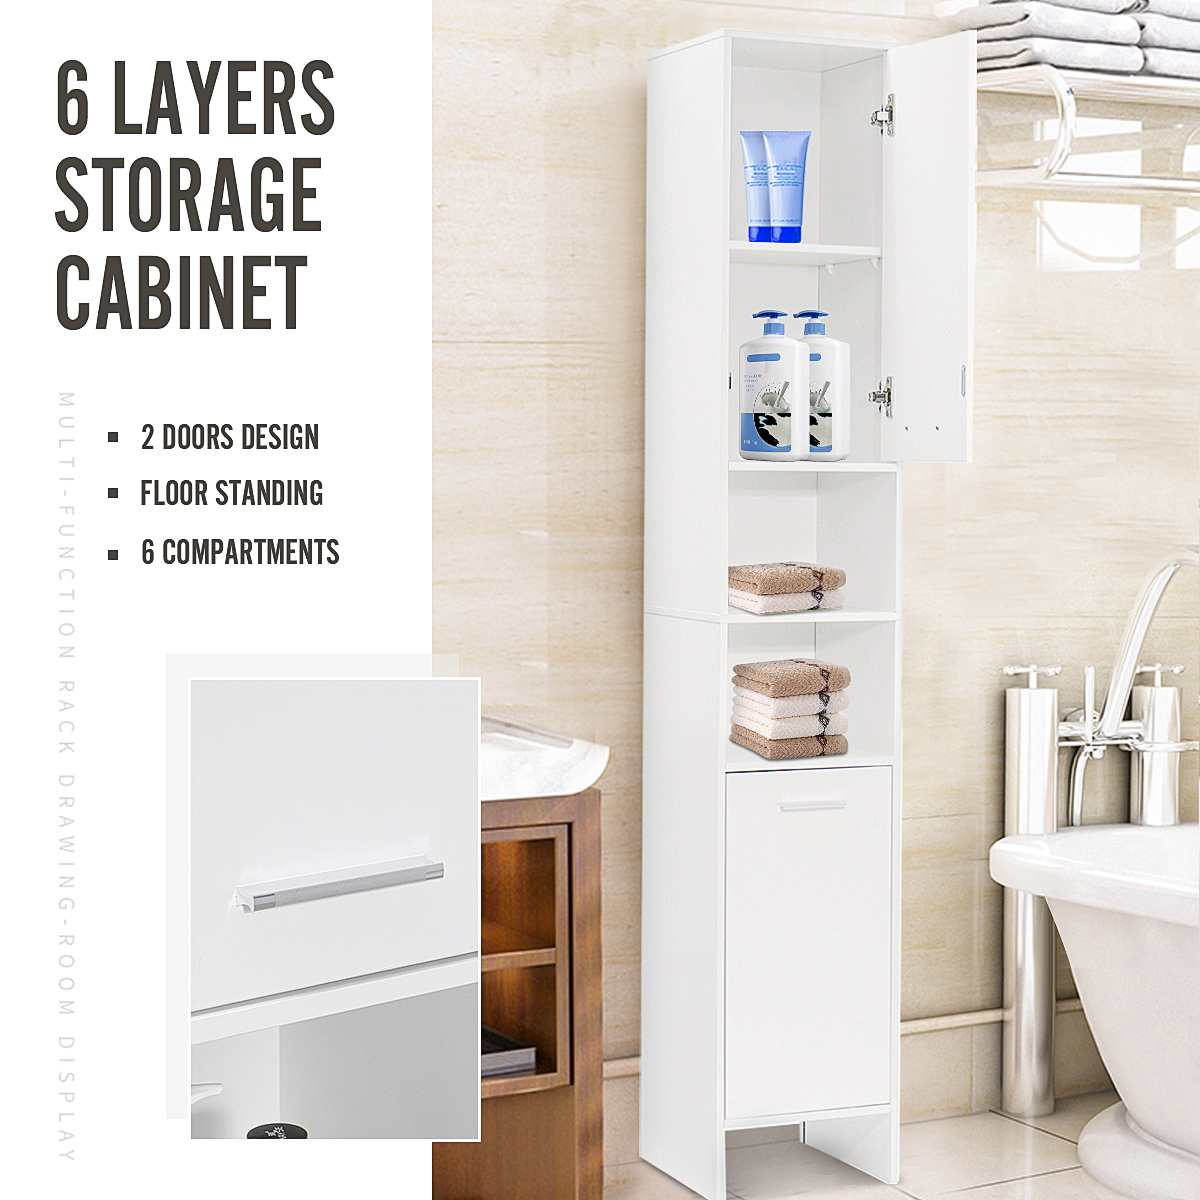 6 Layers Bathroom Cabinet 170x30x30cm Large Cabinet Toilet Furniture Cupboard Shelf Storager Modern Style With Rack For Kitchen